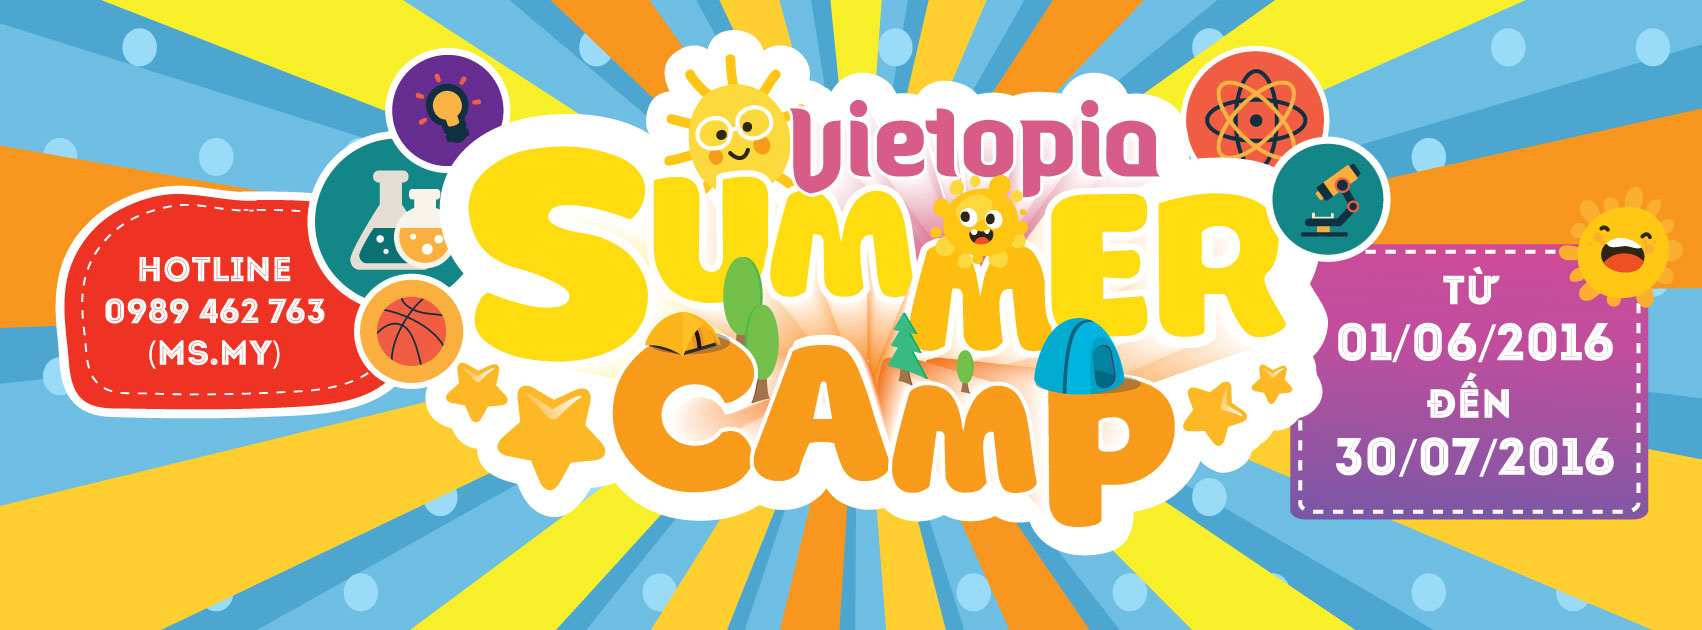 VIETOPIA SUMMER CAMP 2016